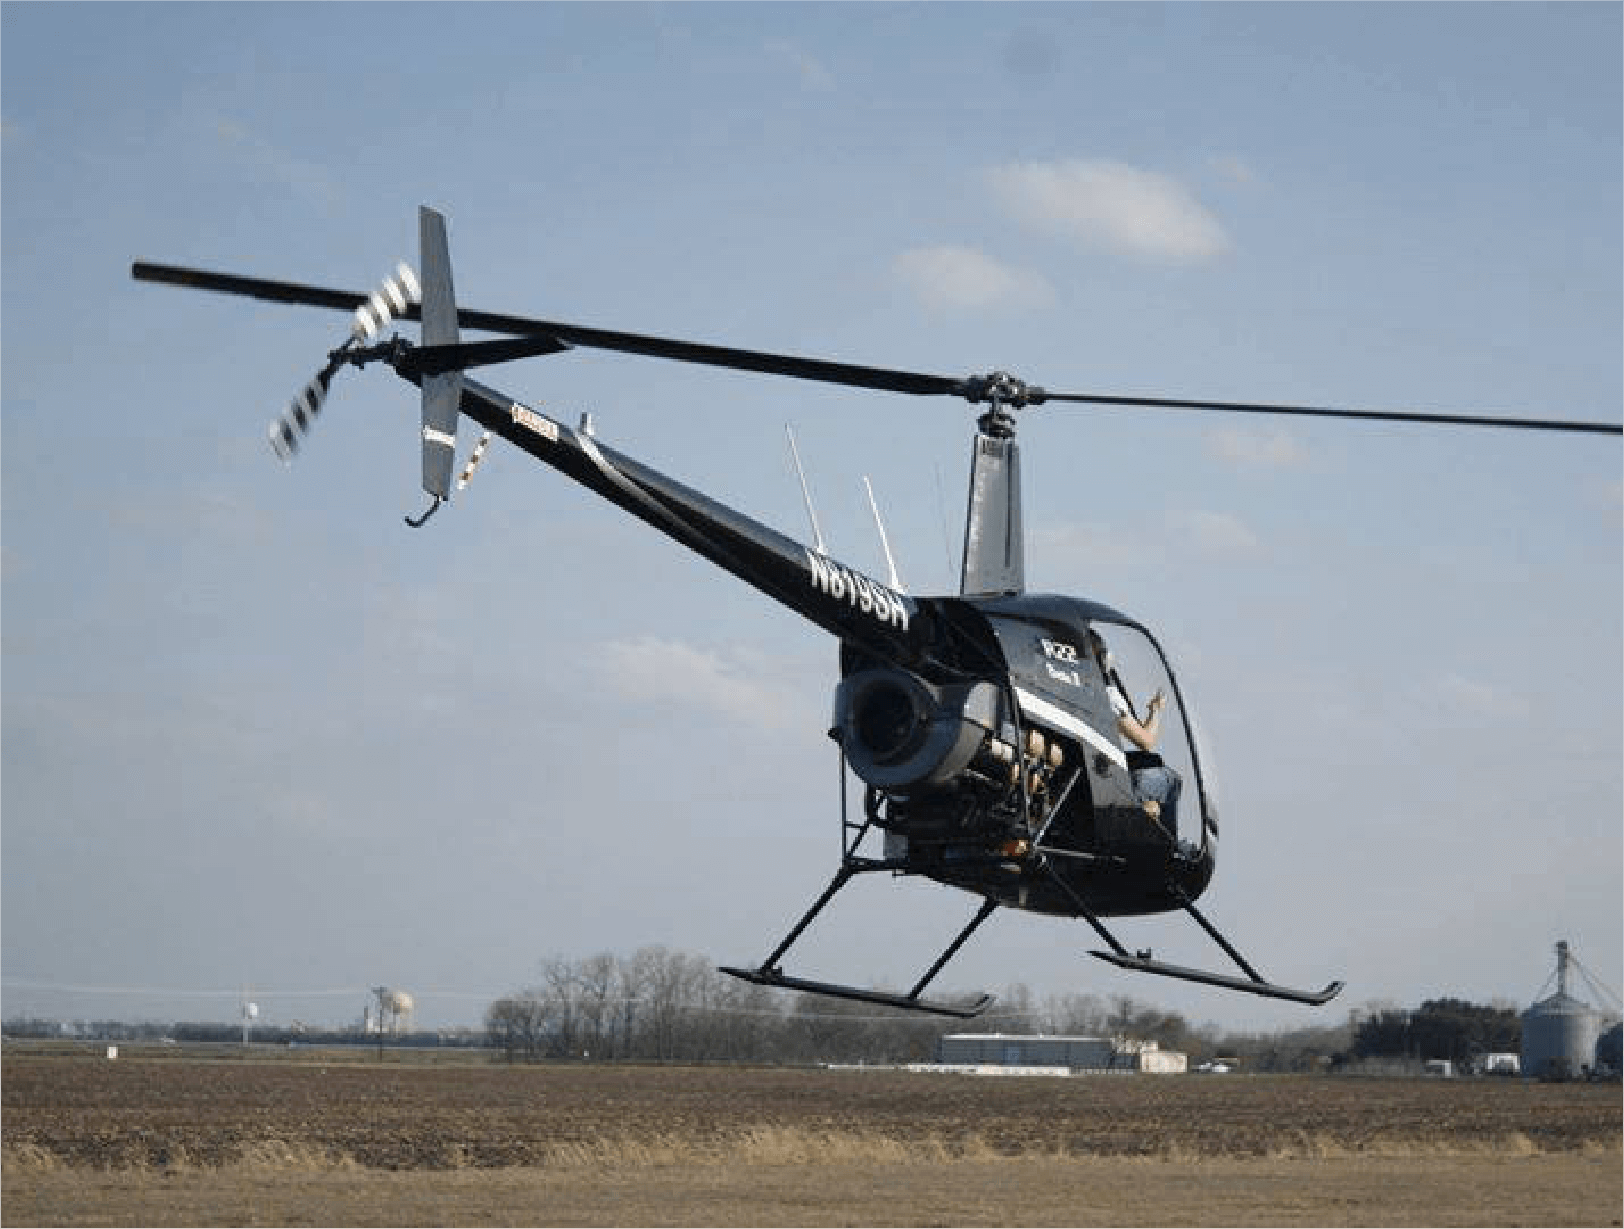 Veracity Aviation Helicopter Tours